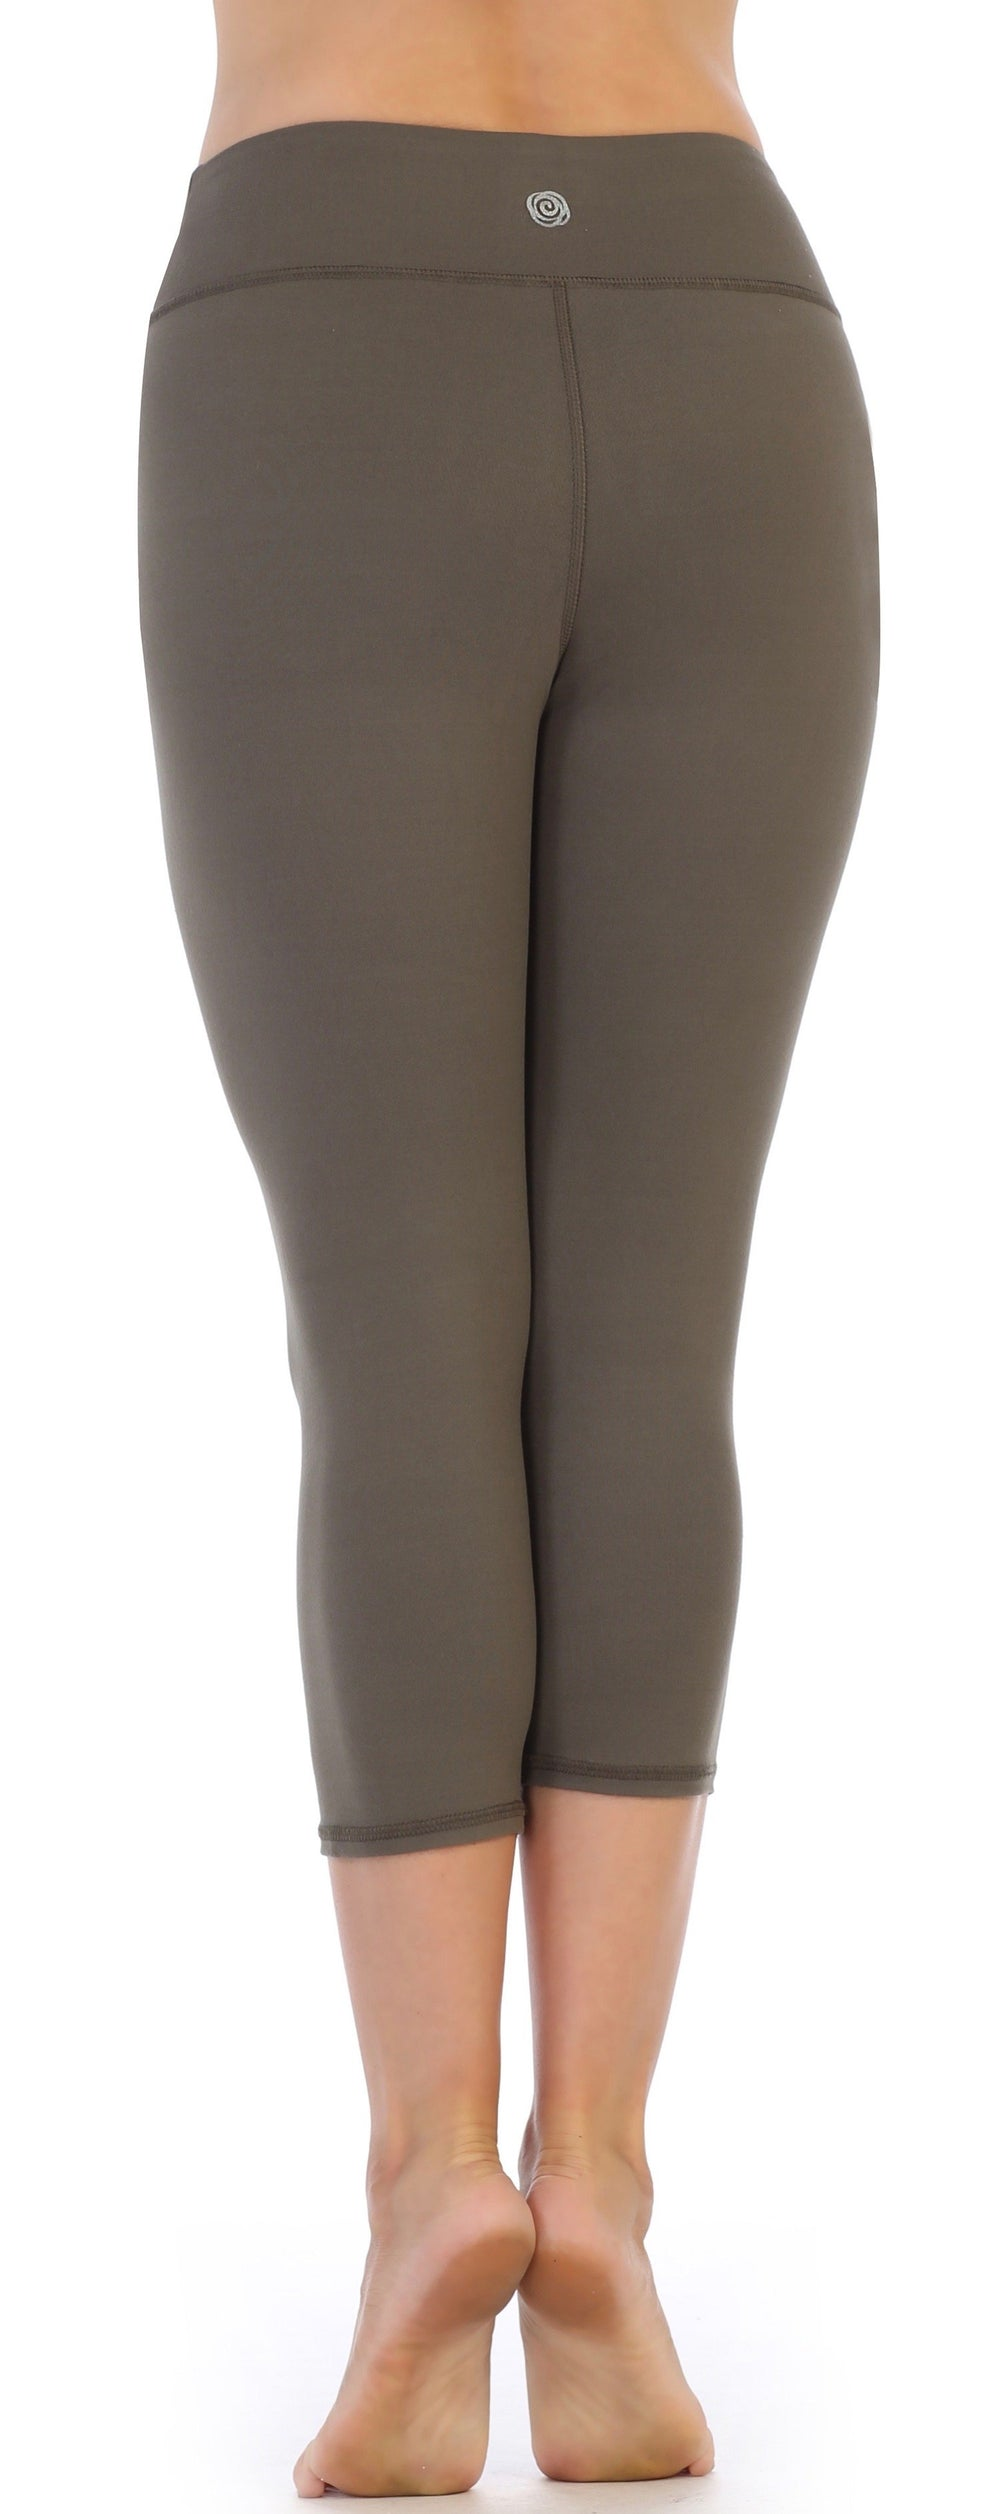 Olive Latte High Waist Compression ¾ Leggings